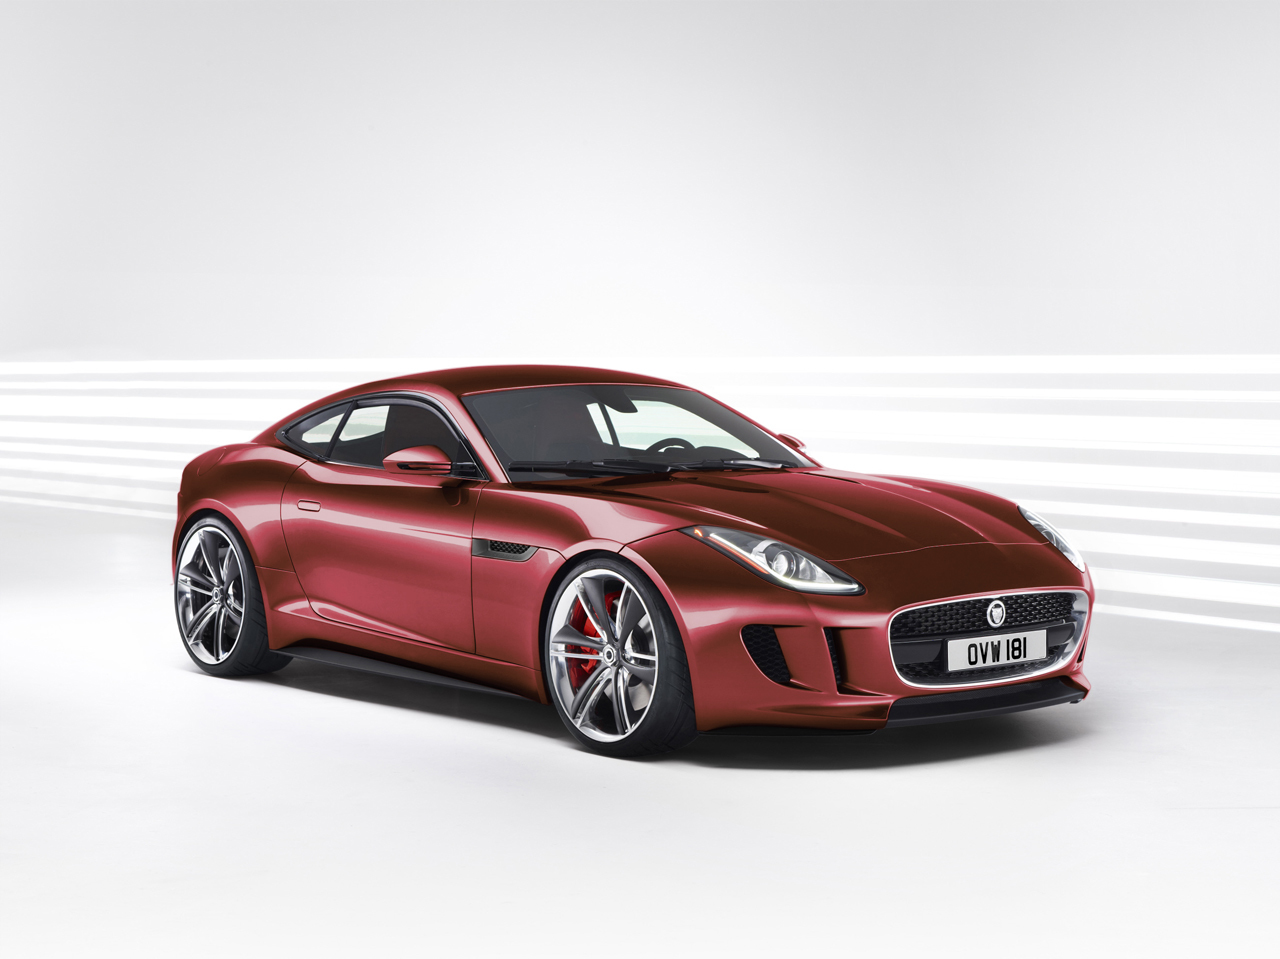 jaguar f type cabriolet apr s le cabriolet la f type. Black Bedroom Furniture Sets. Home Design Ideas